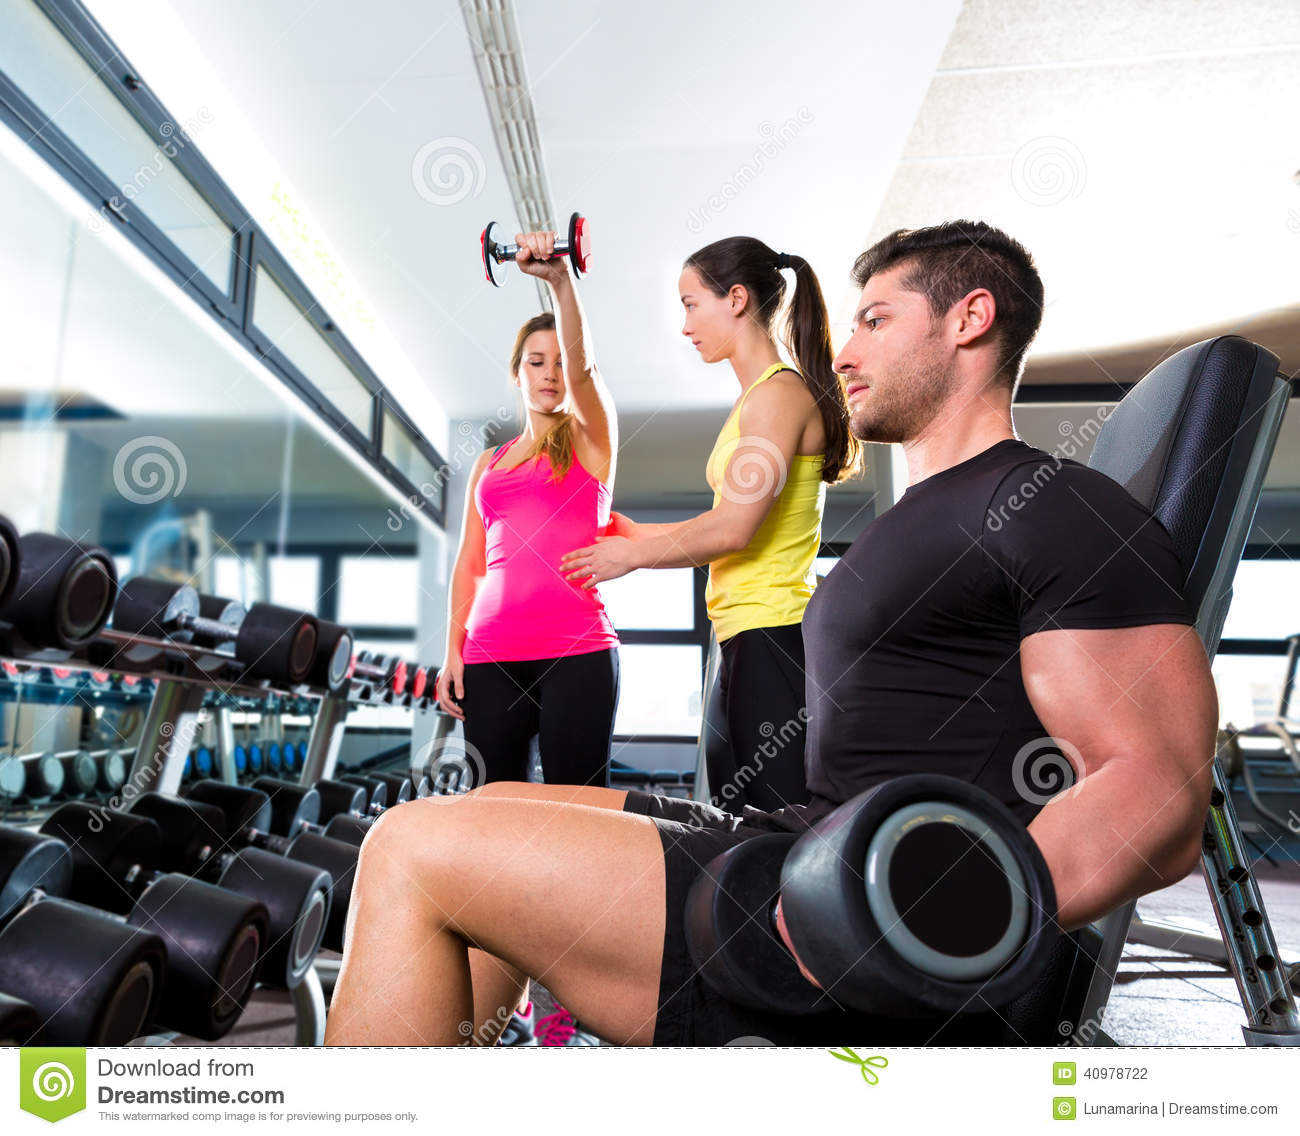 Man Workout: Dumbbell Man At Gym Workout Fitness Weightlifting Stock